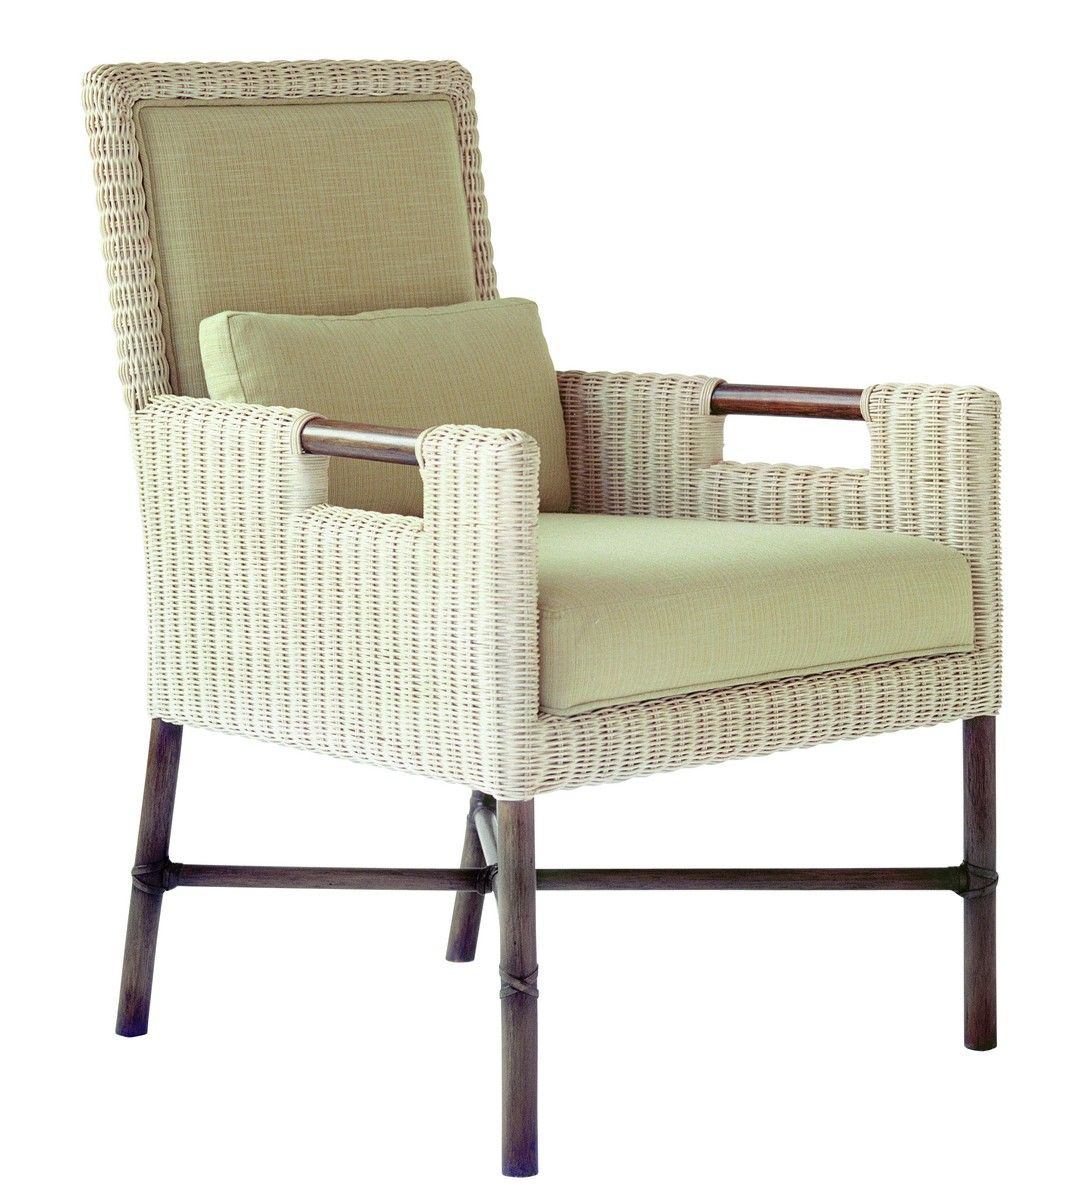 Mobilier Thomas Pheasant - Woven Core Dining Arm Chair